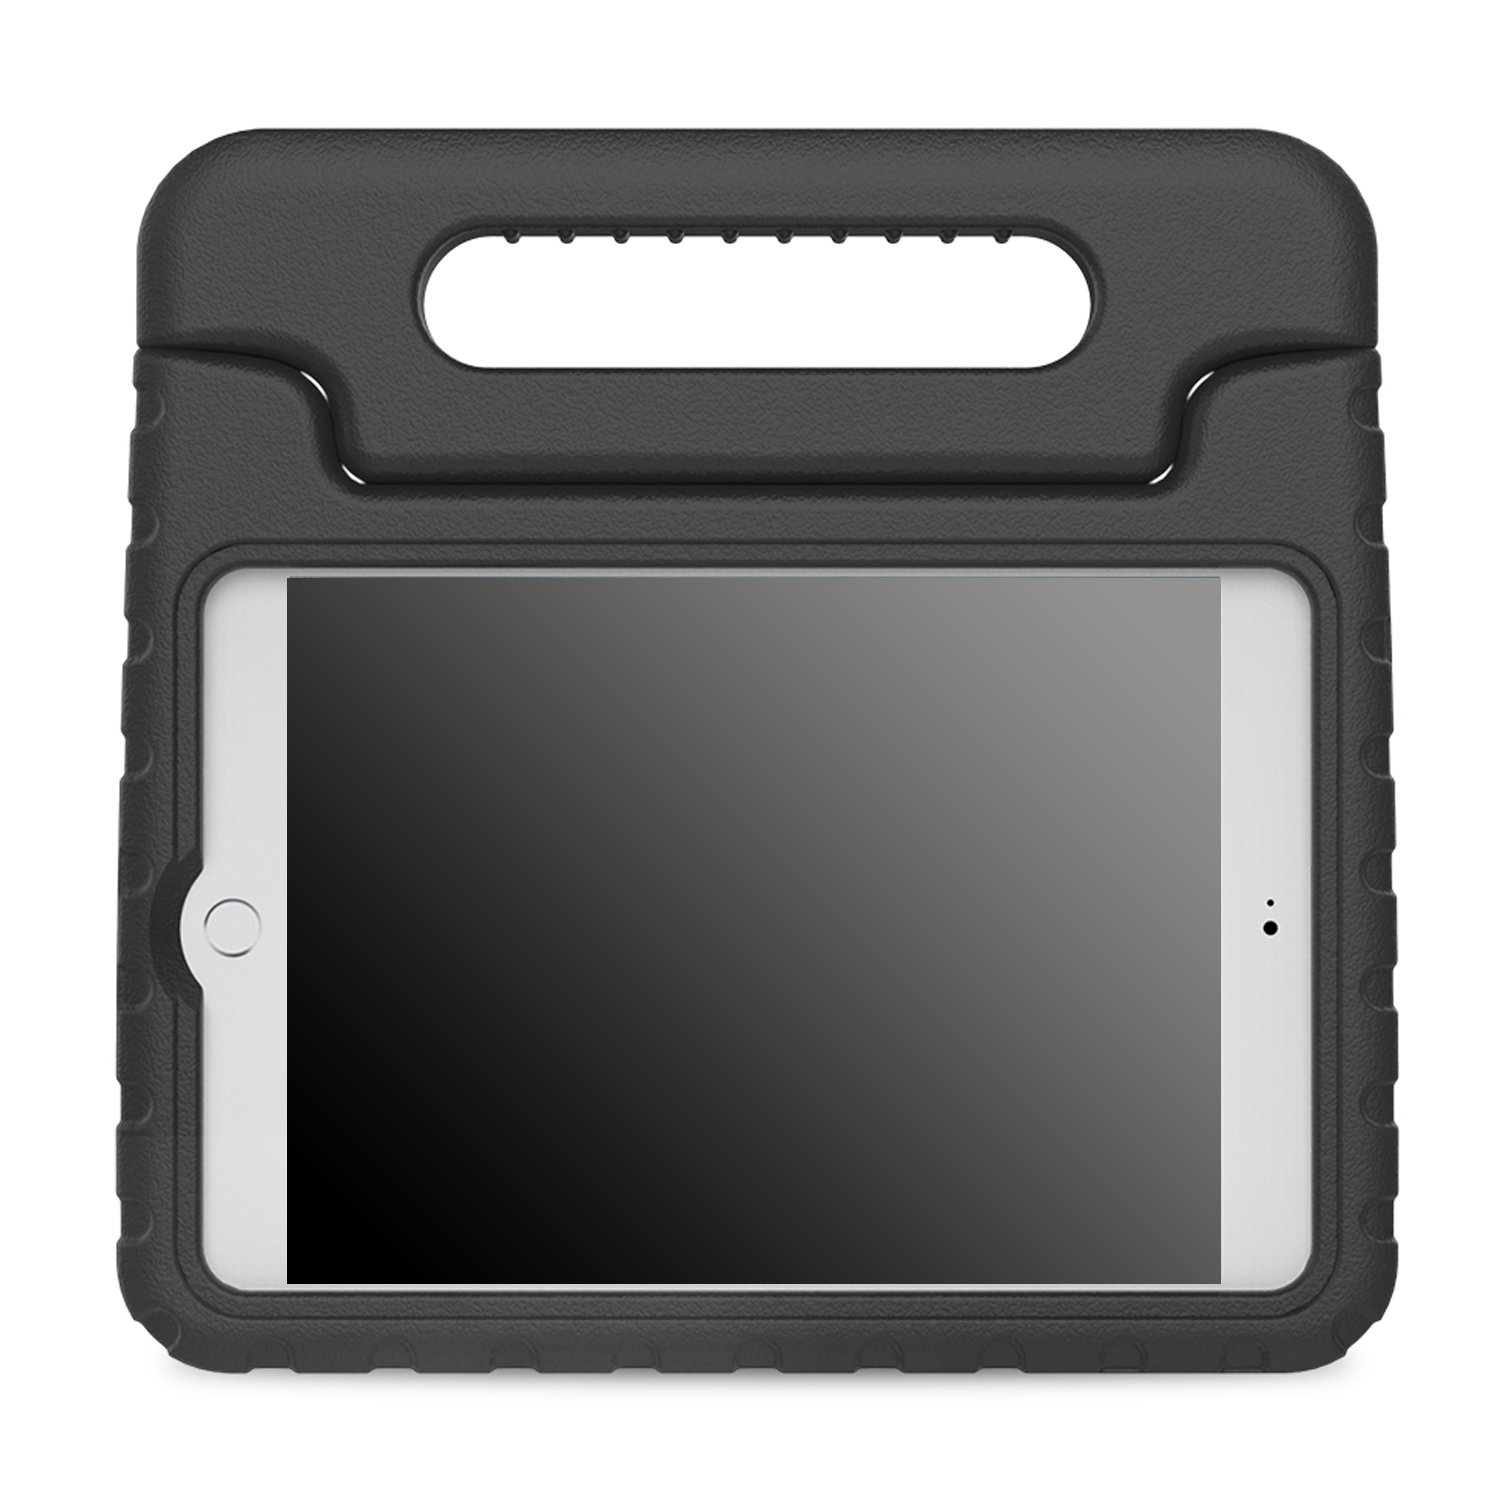 Moko Case For Ipad Mini 4 Kids Shock Proof Convertible Handle Light Wiring Harness Weight Super Protective Stand Cover Apple 2015 Tablet